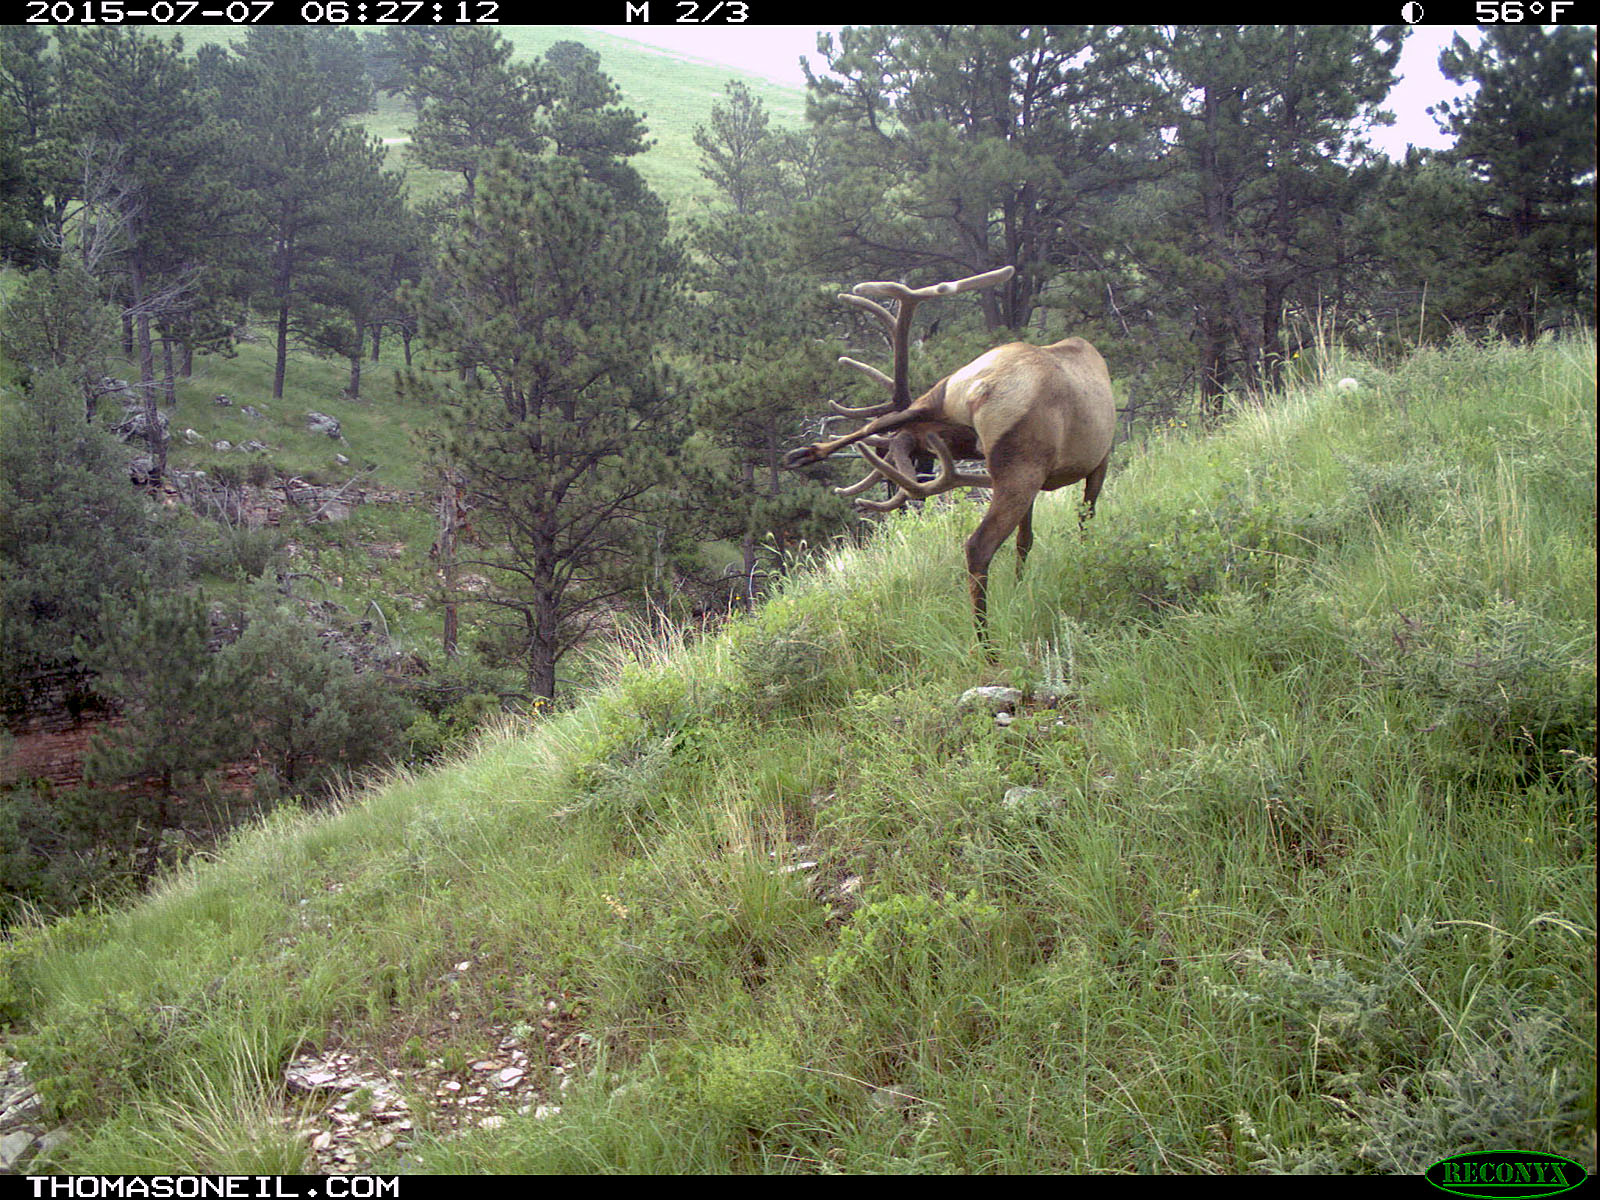 Elk scratching sequence on trailcam, 3 of 7, Wind Cave National Park, July 2015,   Click for next photo.